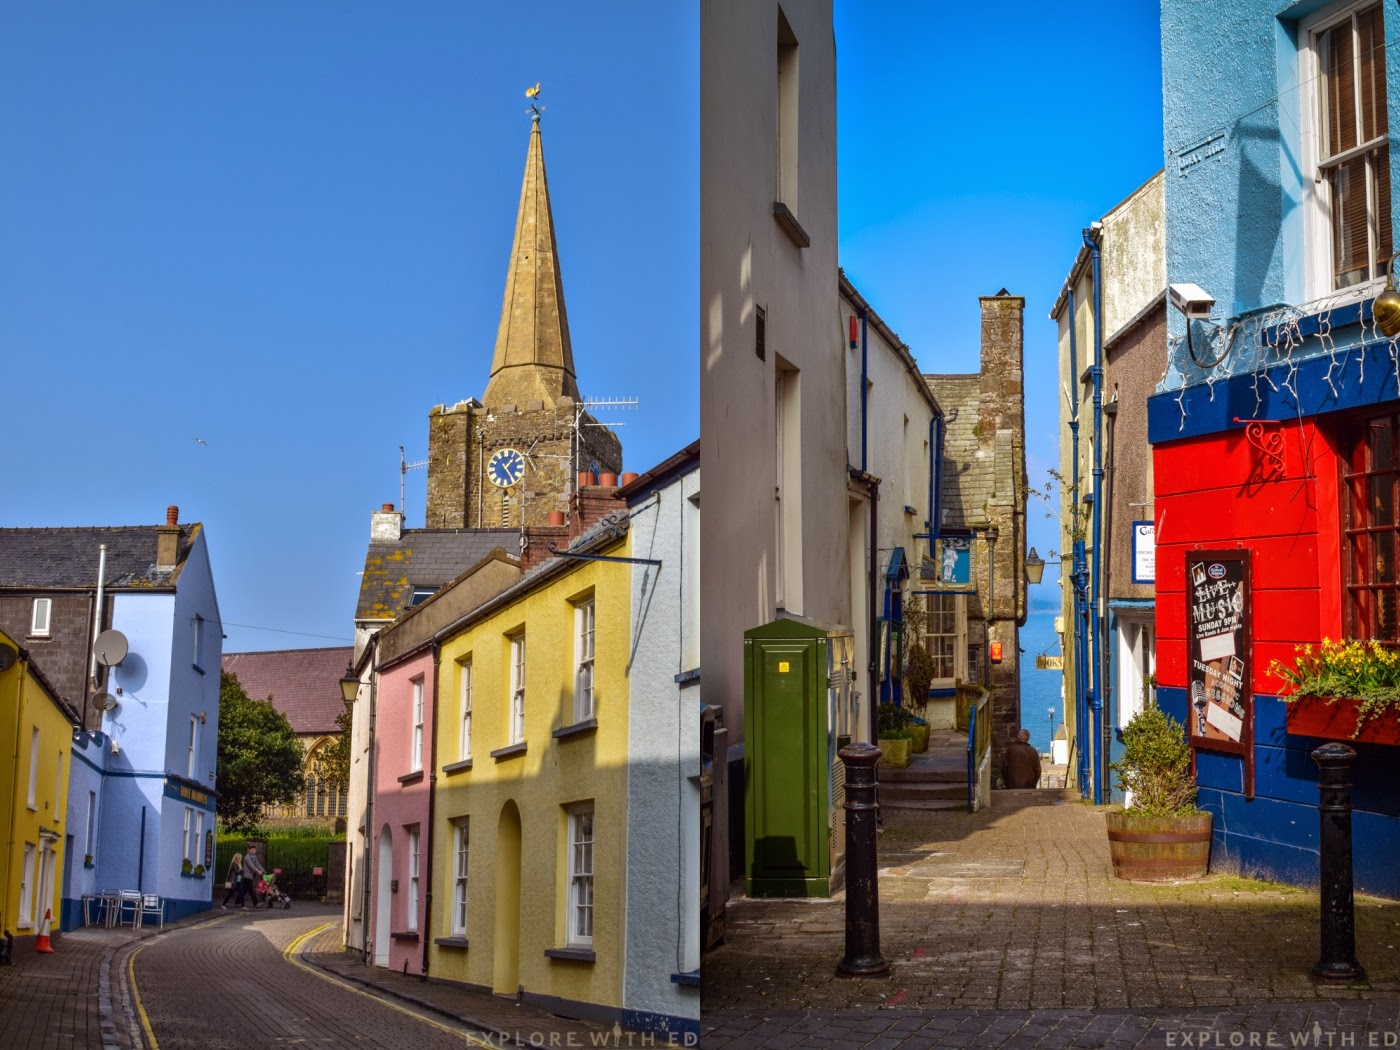 Colourful houses in Tenby